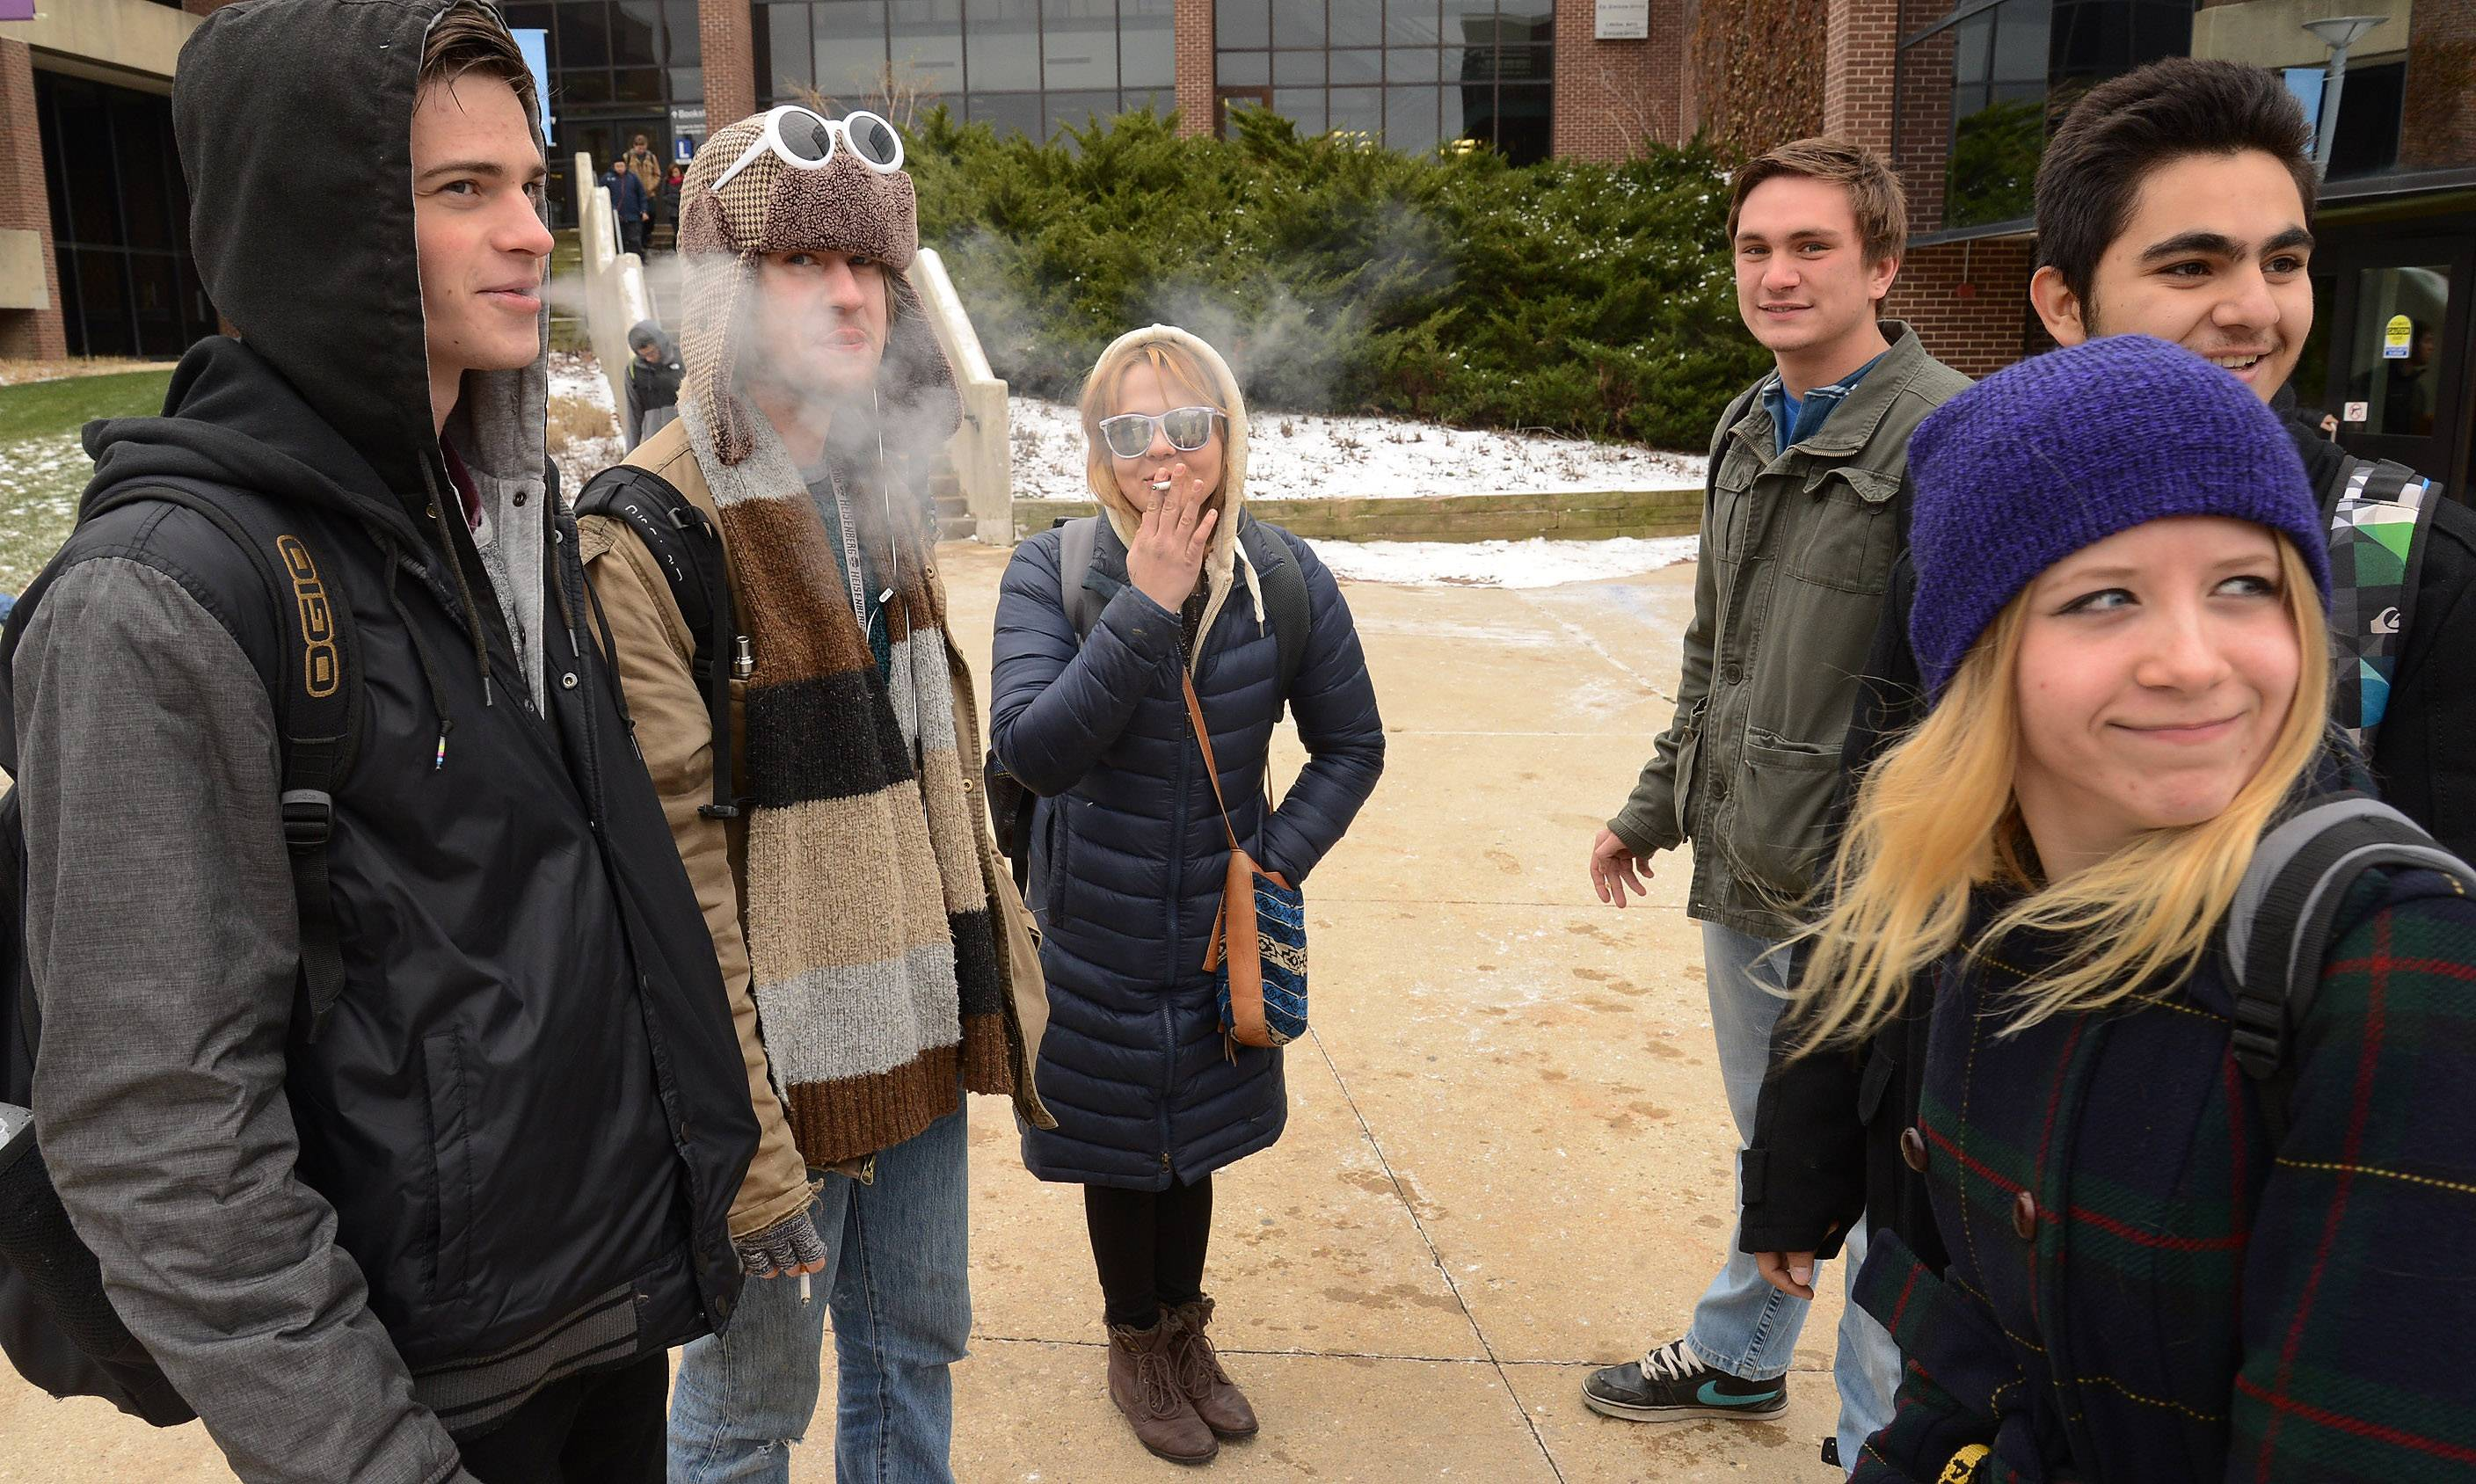 Students smoke and huddle in the cold outside Harper College in Palatine.